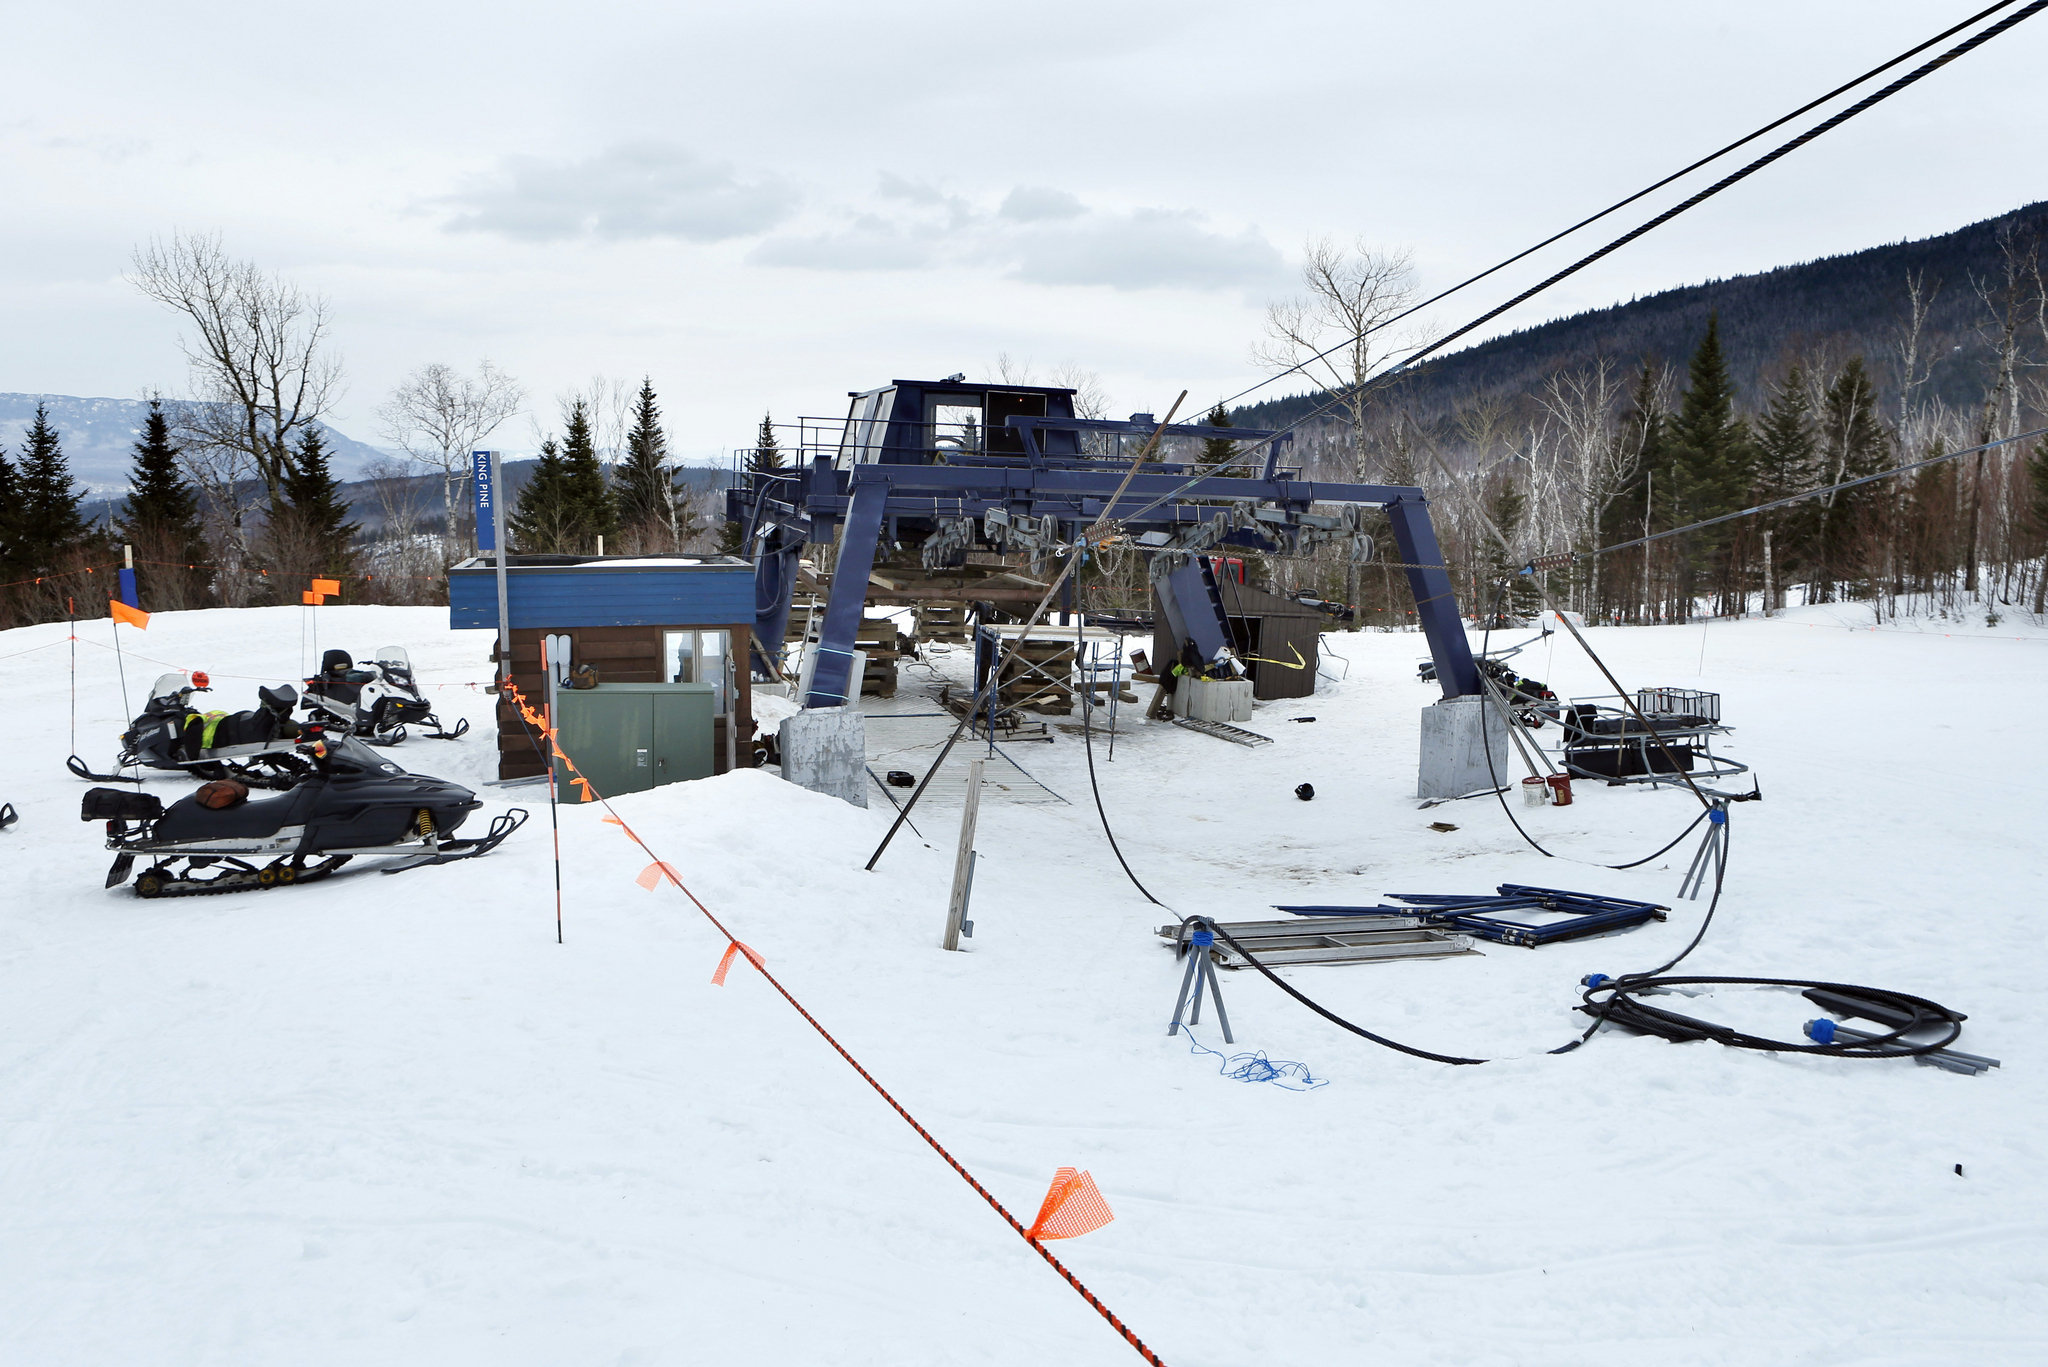 Maine ski resort accident prompts Upstate NY chairlift company to